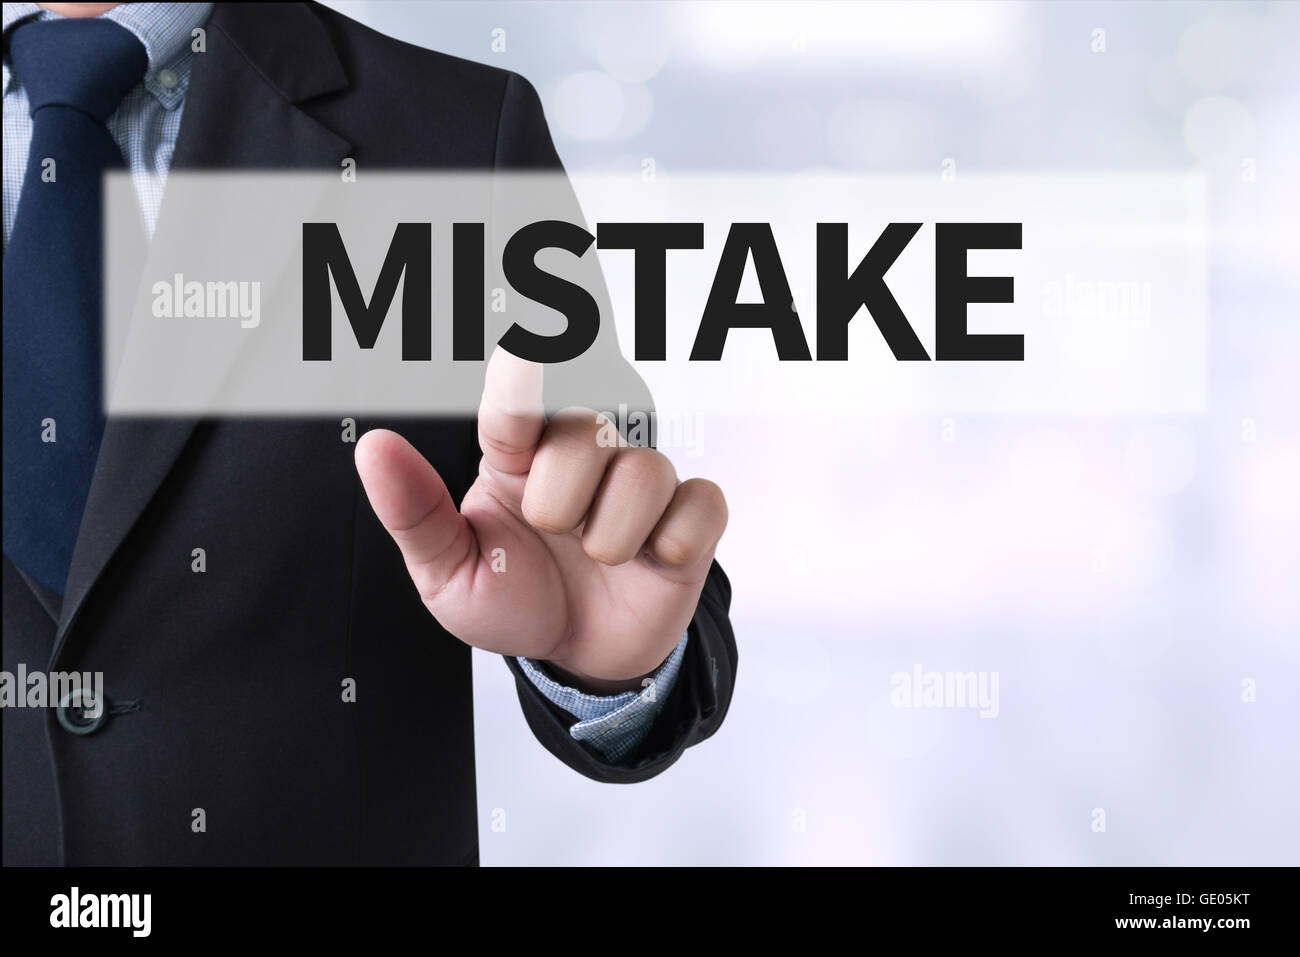 MISTAKE Businessman hands touching on virtual screen and blurred city background - Stock Image